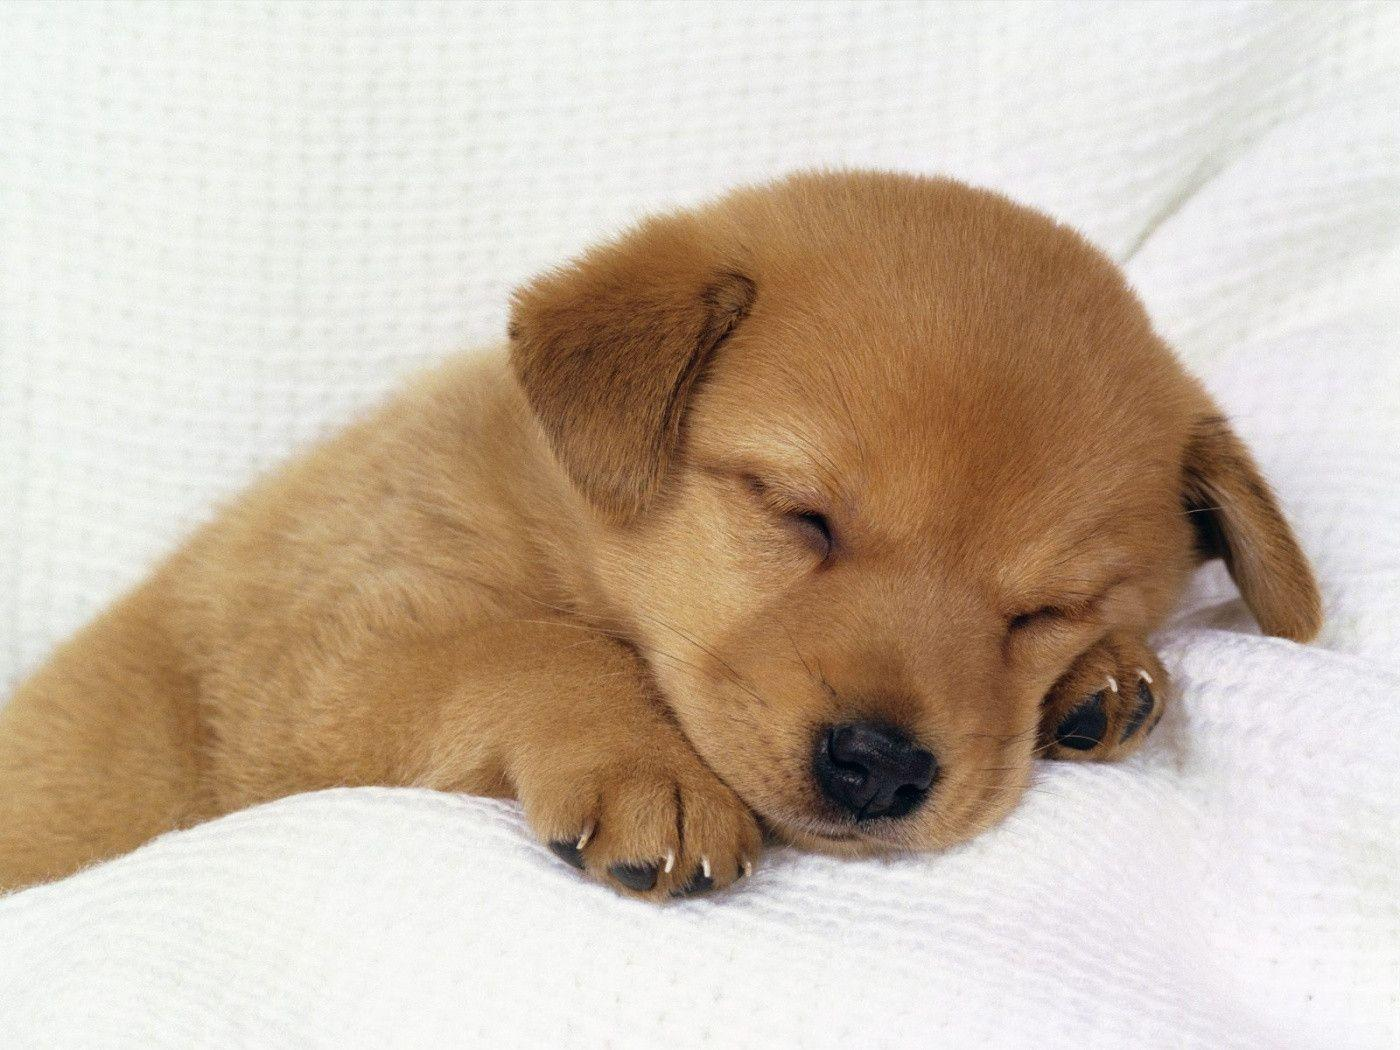 Cute Puppy Backgrounds   Wallpaper Cave Wallpapers For   Cute Puppy Desktop Background